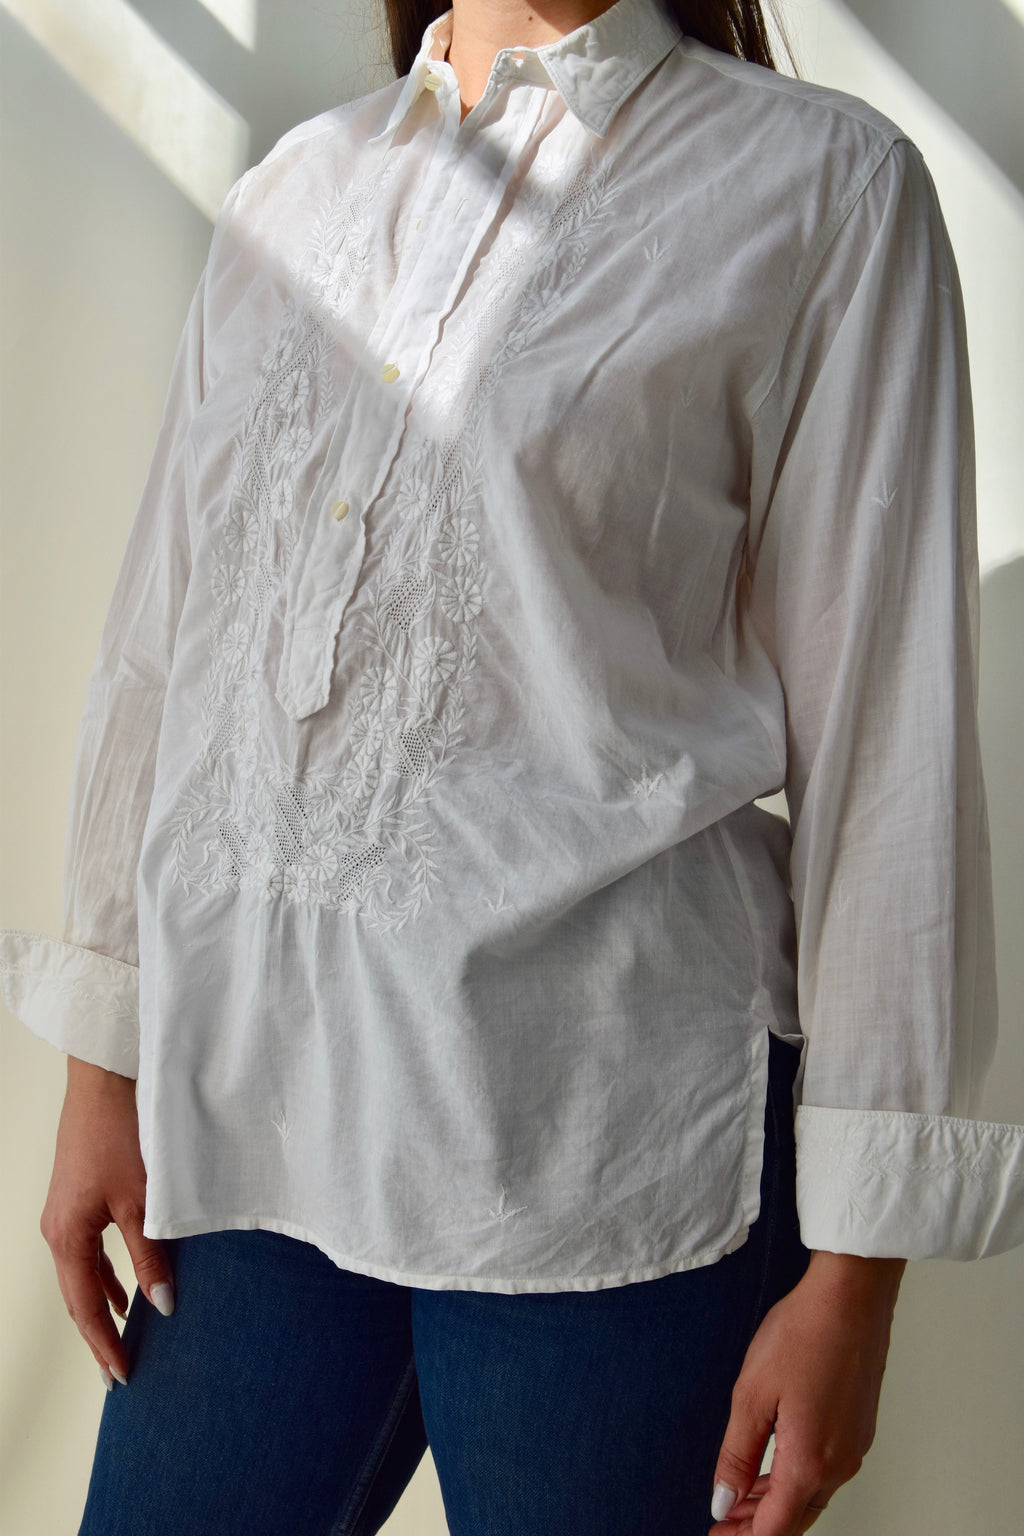 Vintage Crisp White Cotton Embroidered Shirt FREE SHIPPING TO THE U.S.